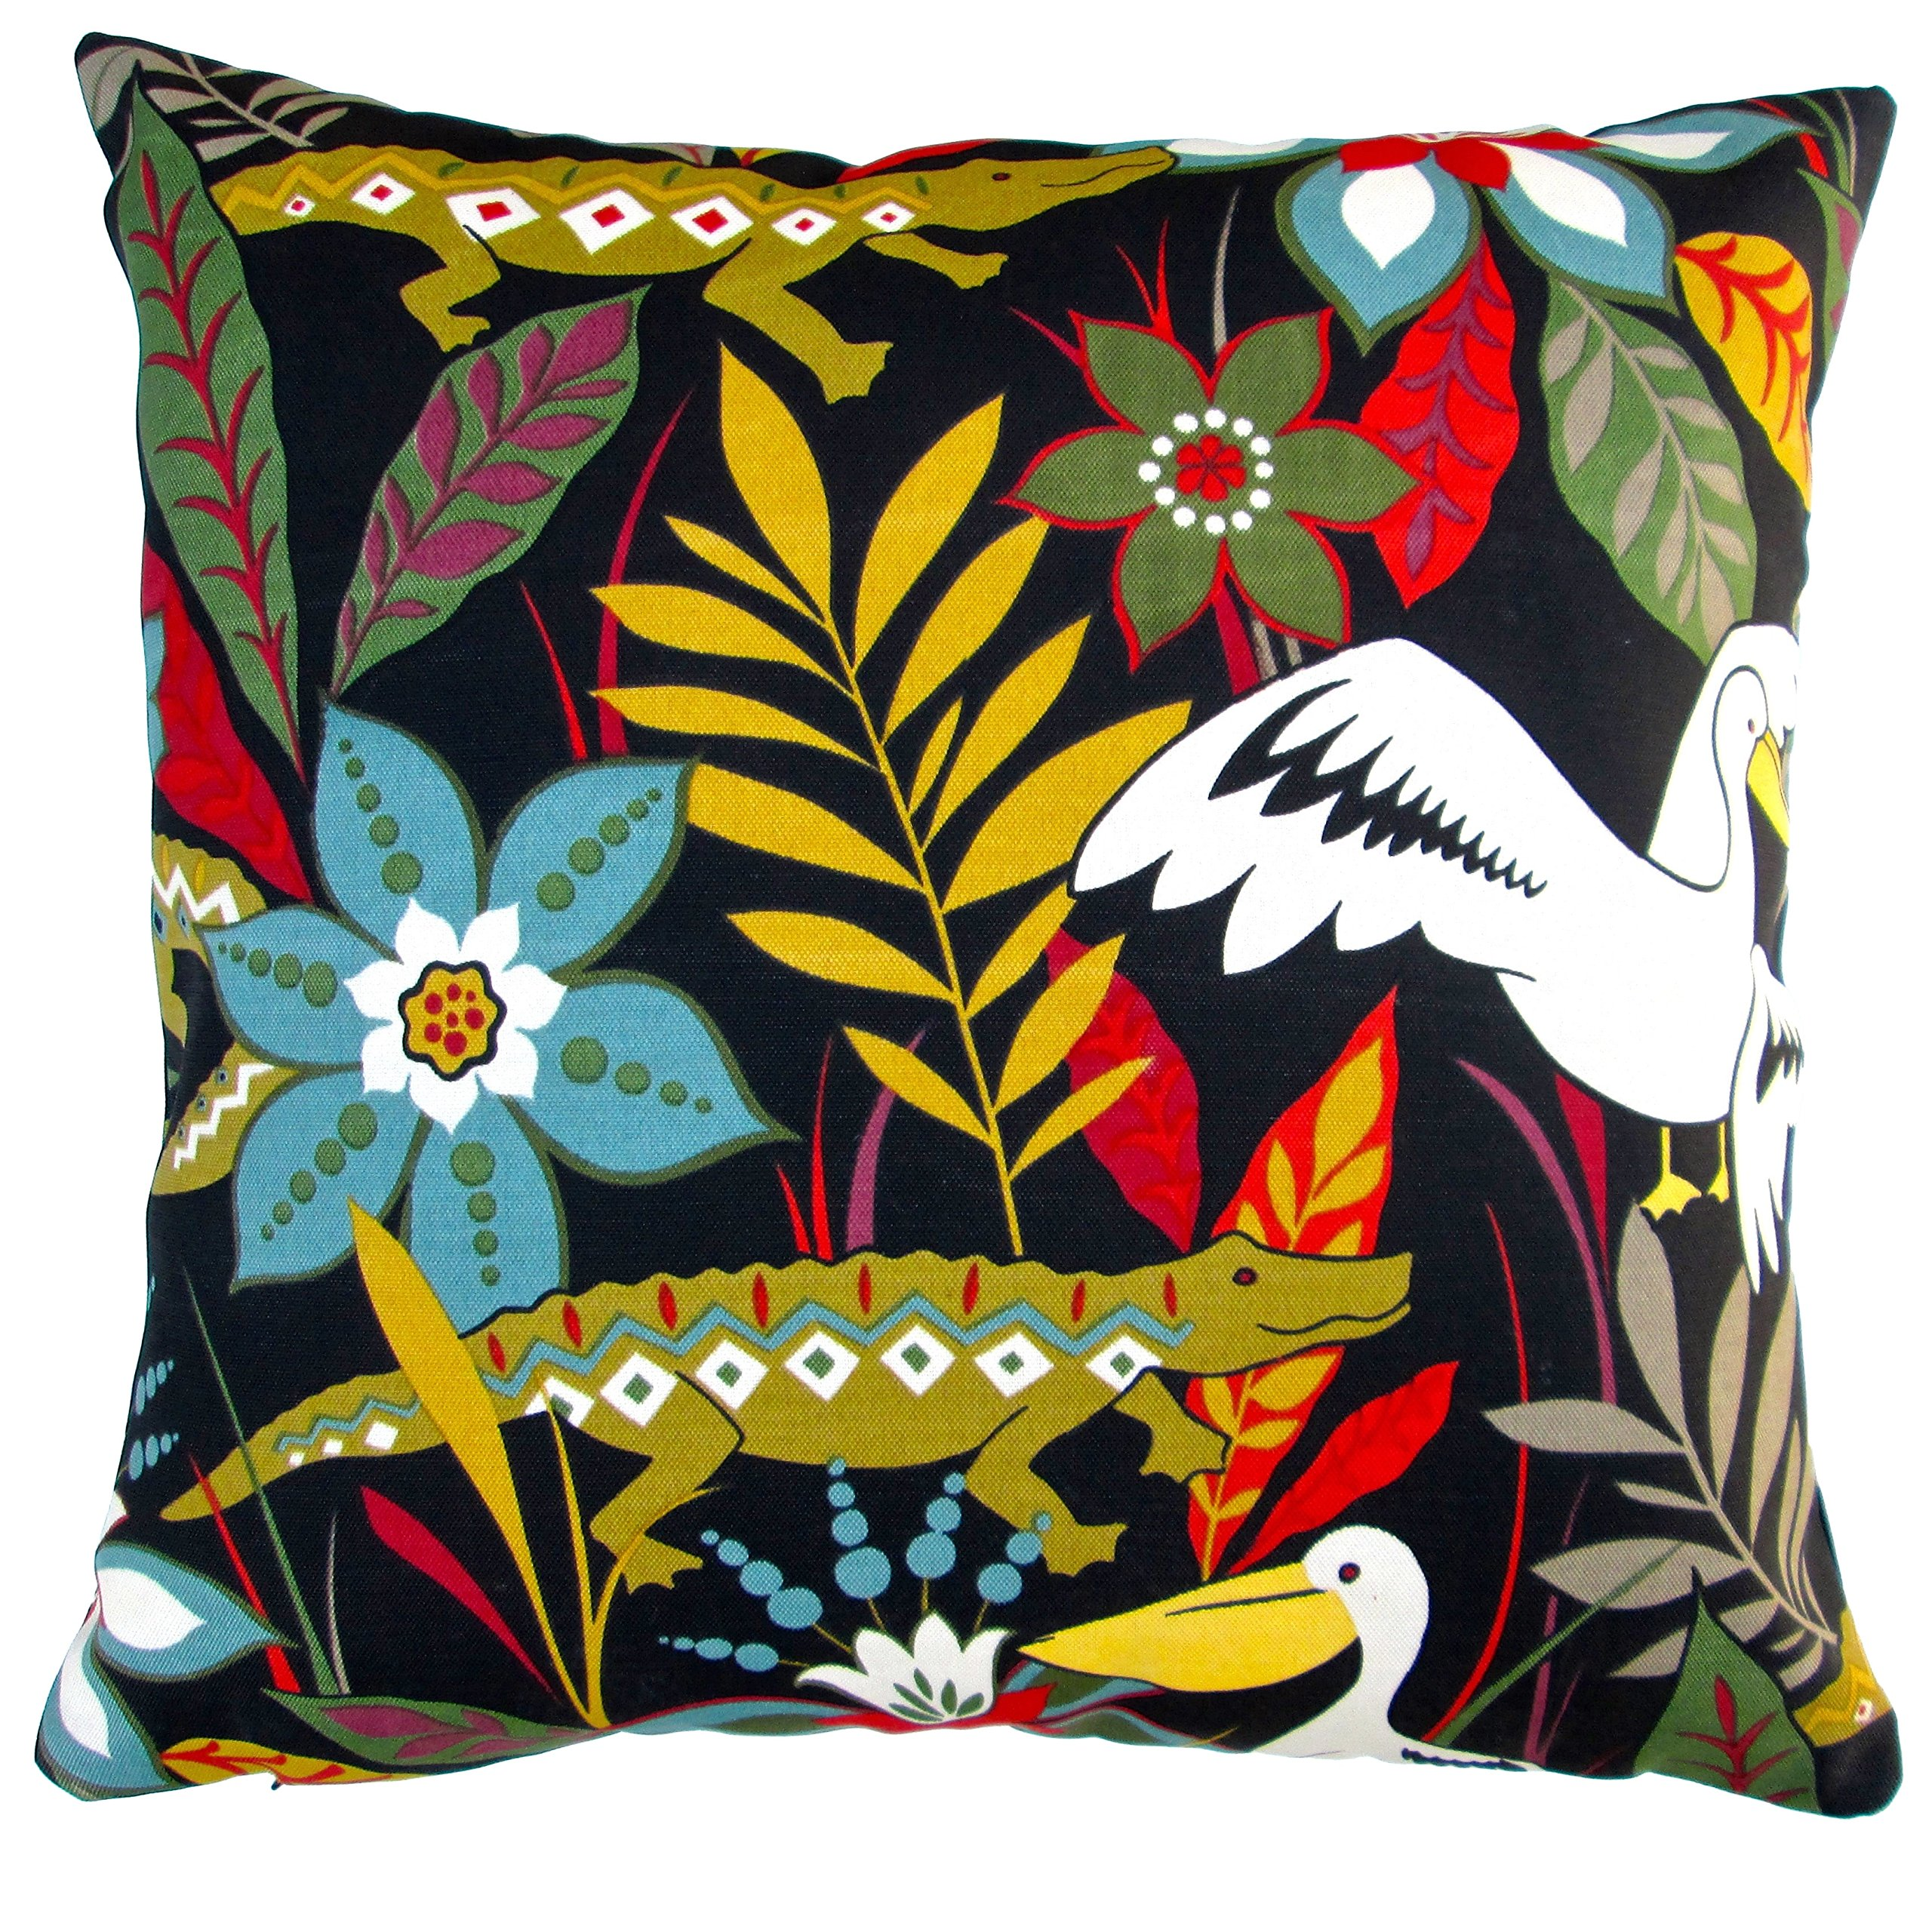 ARTISAN PILLOWS Indoor/ Outdoor 18-inch Kids Colorful Tropical Crocodile and Bird and Flower Black Throw Pillow (Set of 2)